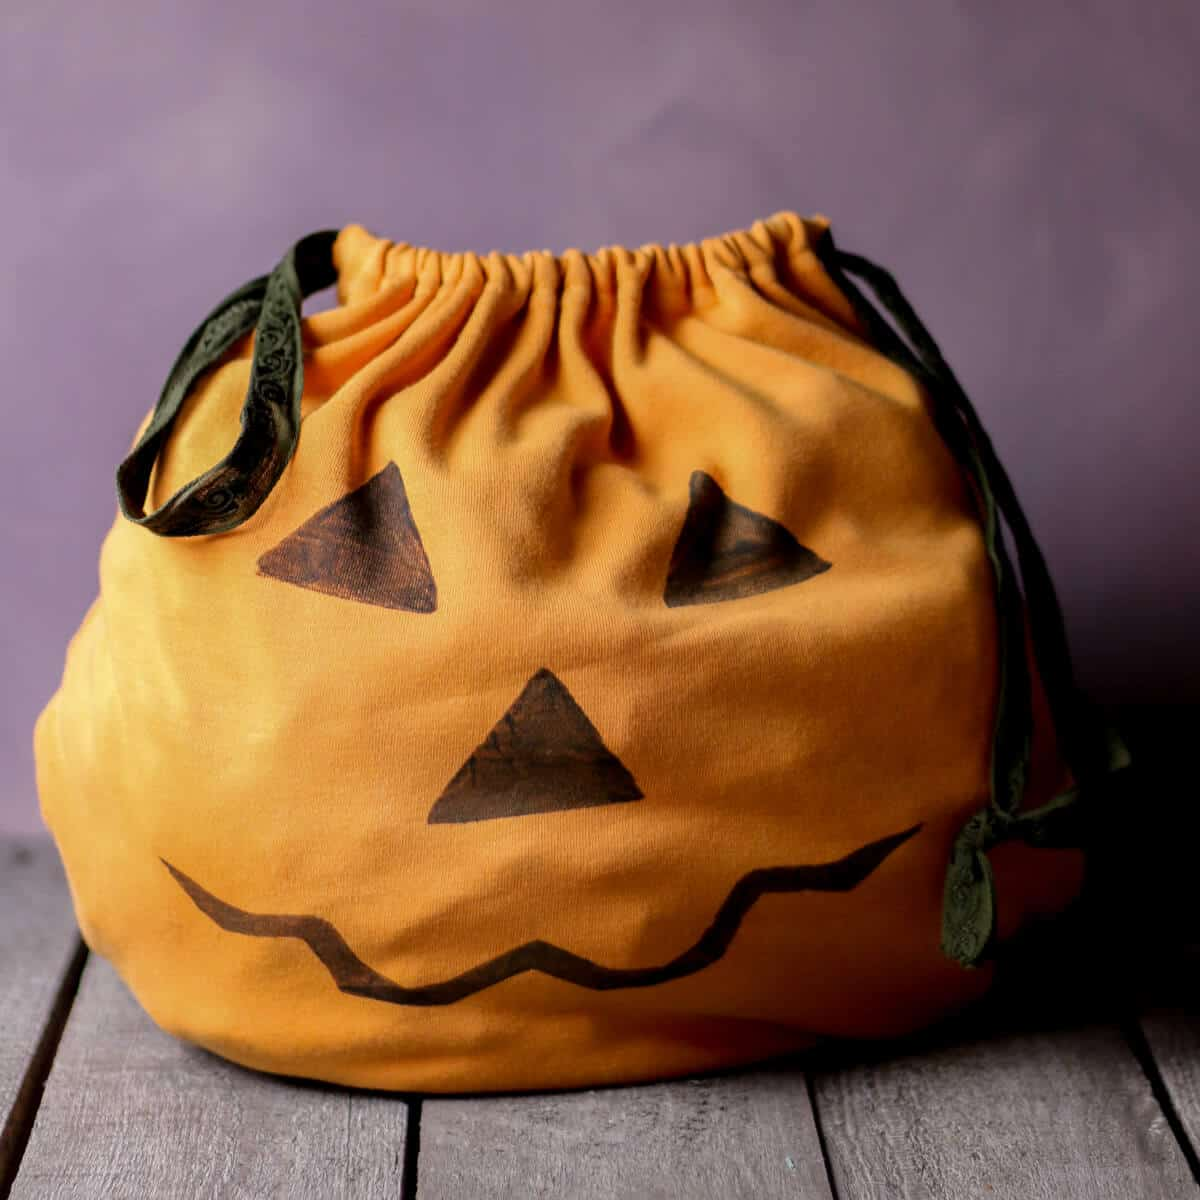 An orange homemade trick-or-treat bag decorated with a Jack-o-lantern face.